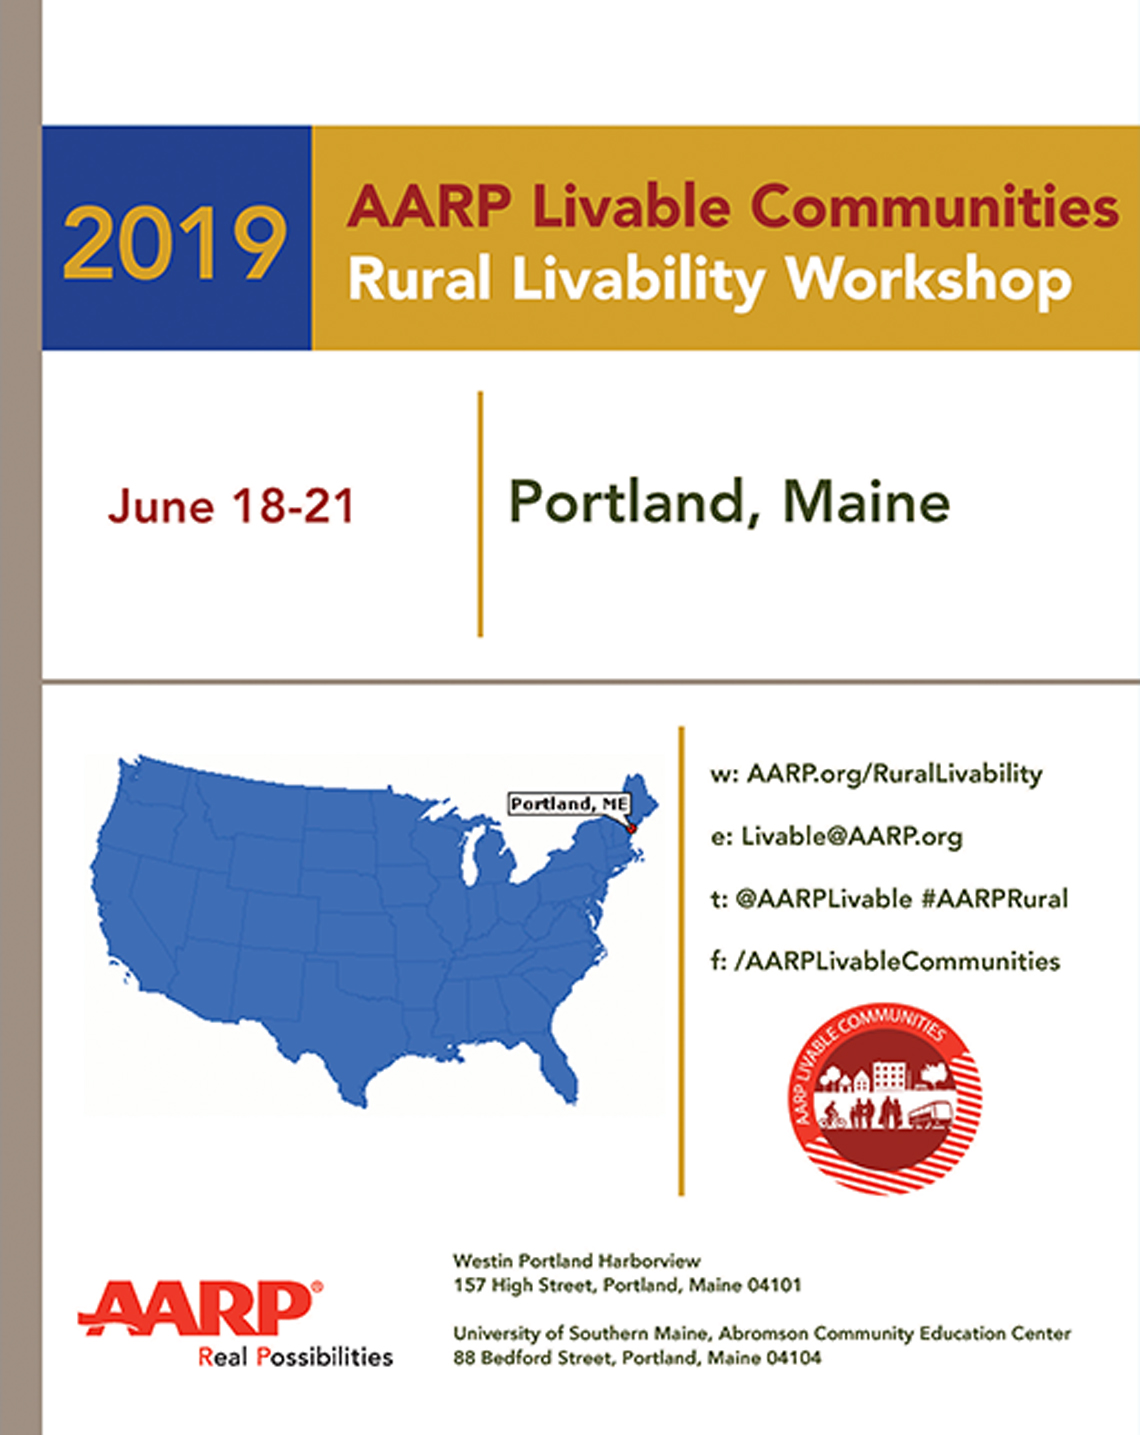 Program booklet for the 2019 AARP Rural Livability Workshop